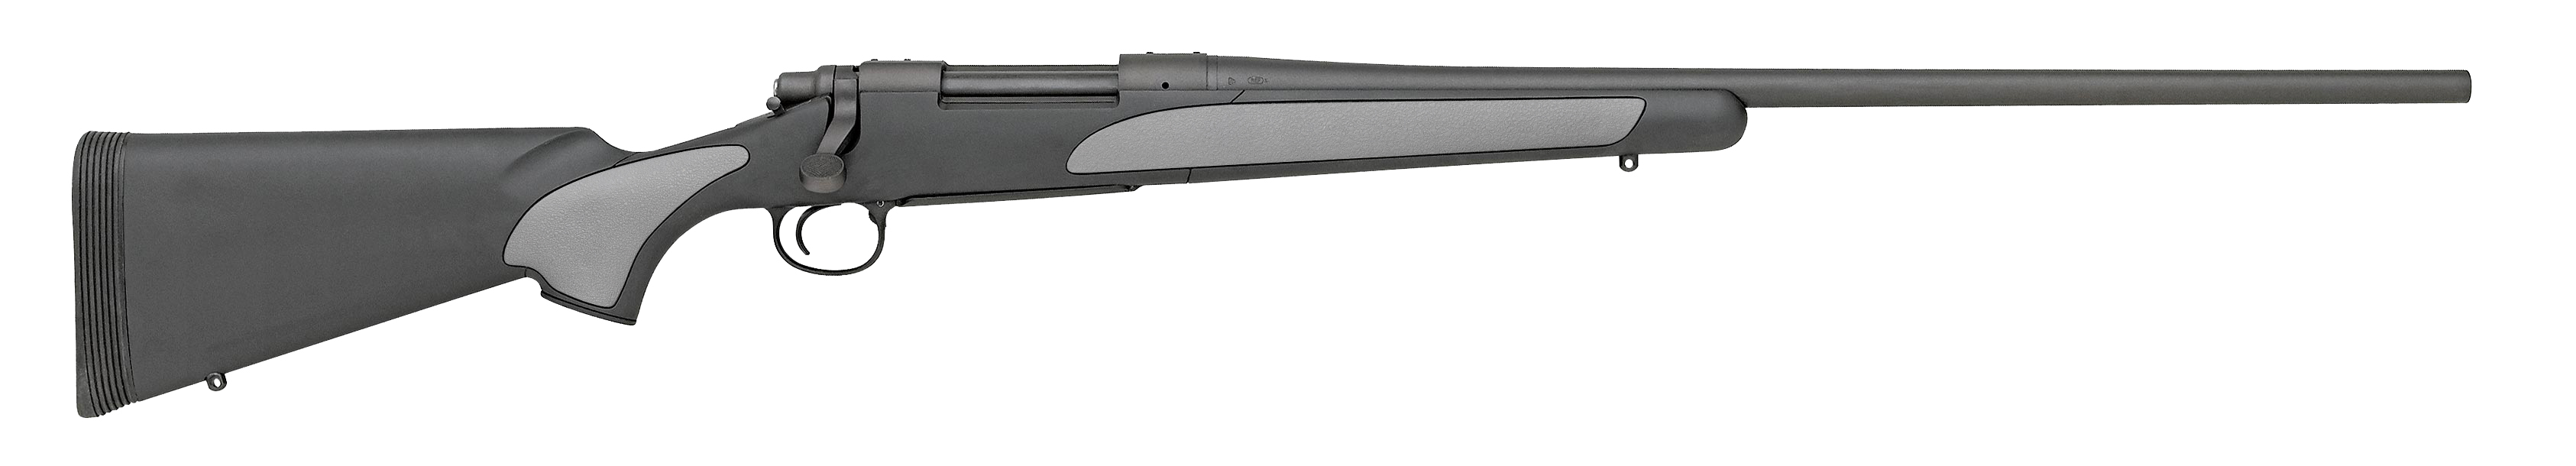 REMINGTON MODEL 700 SPECIAL PURPOSE SYNTHETIC THREADED MUZZLE 308 WIN BOLT ACTION RIFLE